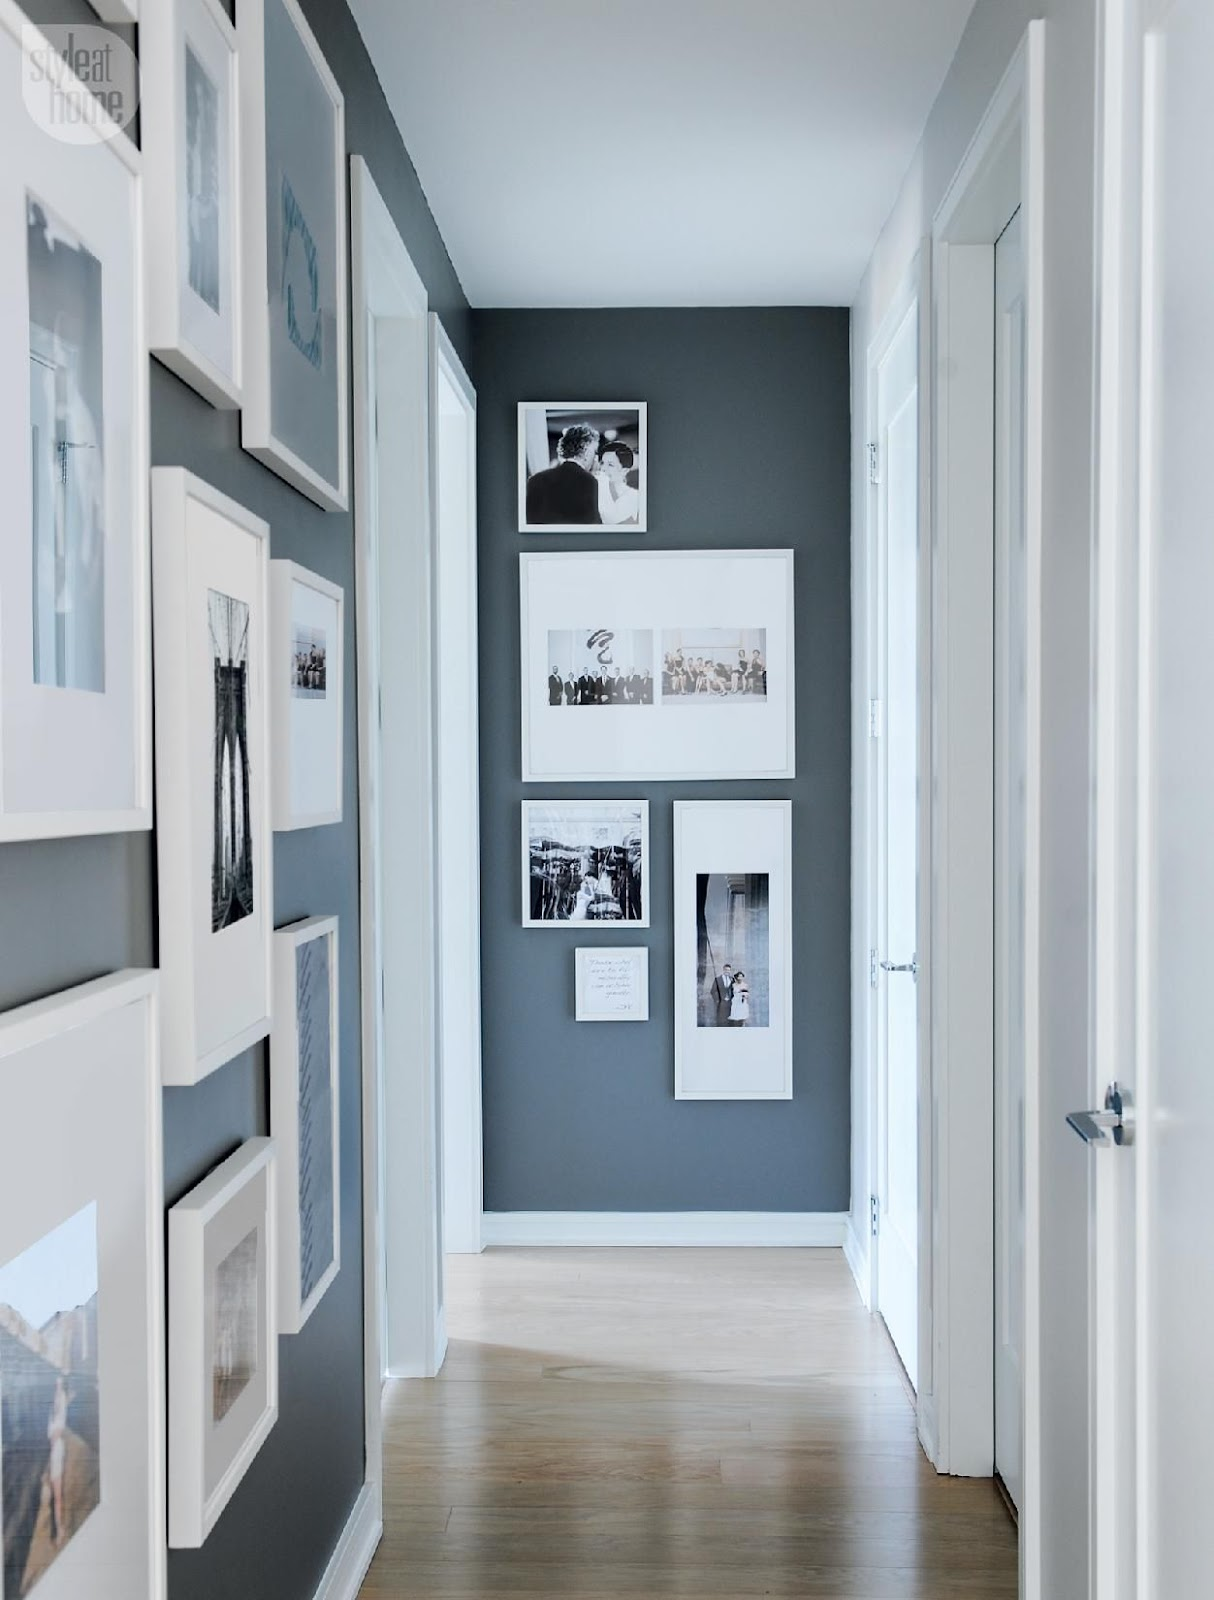 Hang A Cozy Gallery Wall Ideas For An Empty Hallway Wall